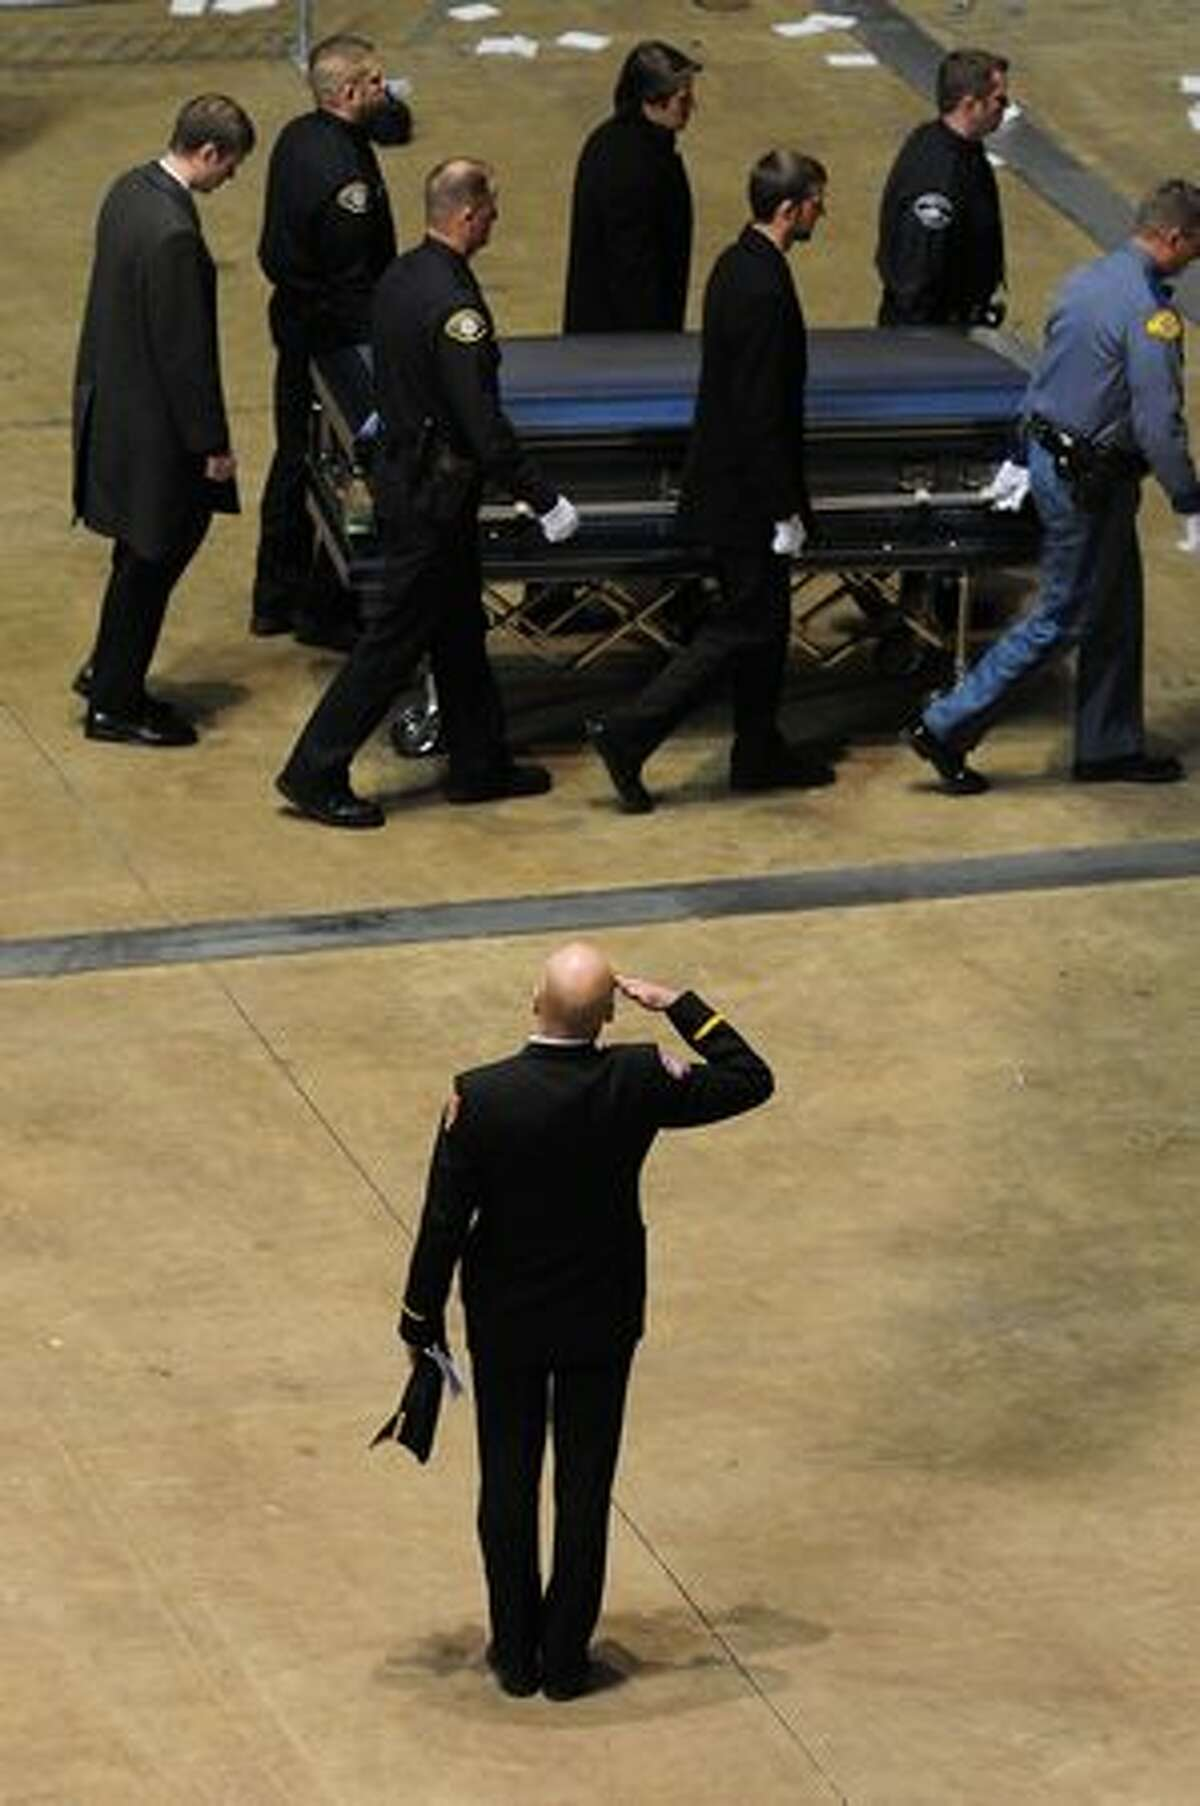 An officer salutes as a casket is removed following a memorial service for four slain police officers in Tacoma.